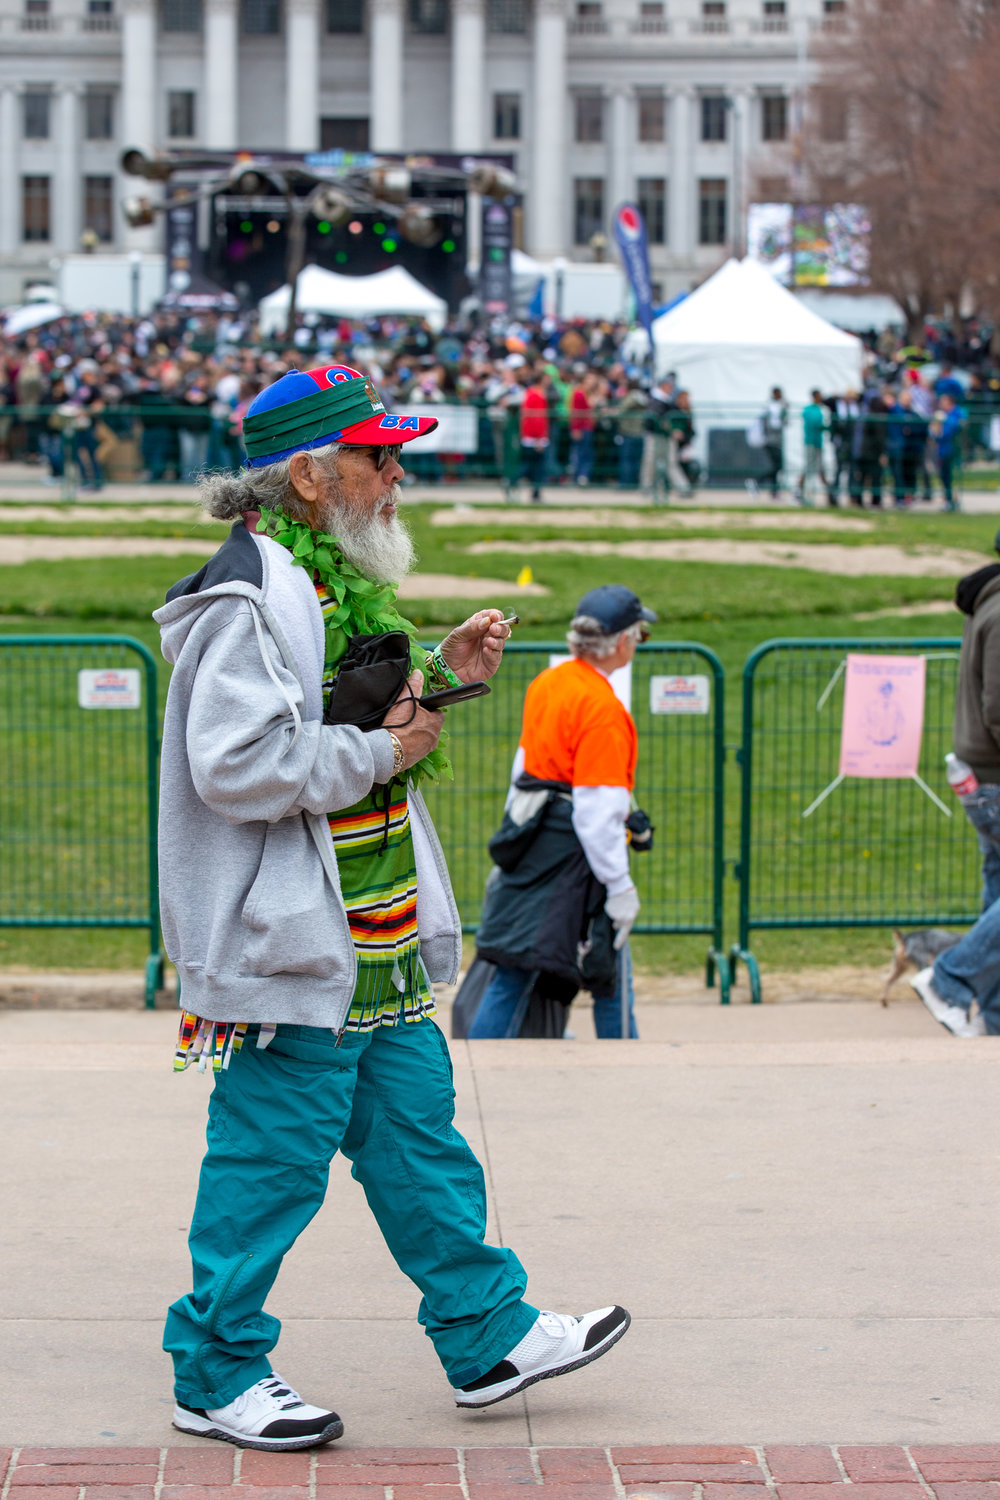 Mile High 420 Festival Civic Center Park Nikki A. Rae Photography 04.20.2018-16.jpg